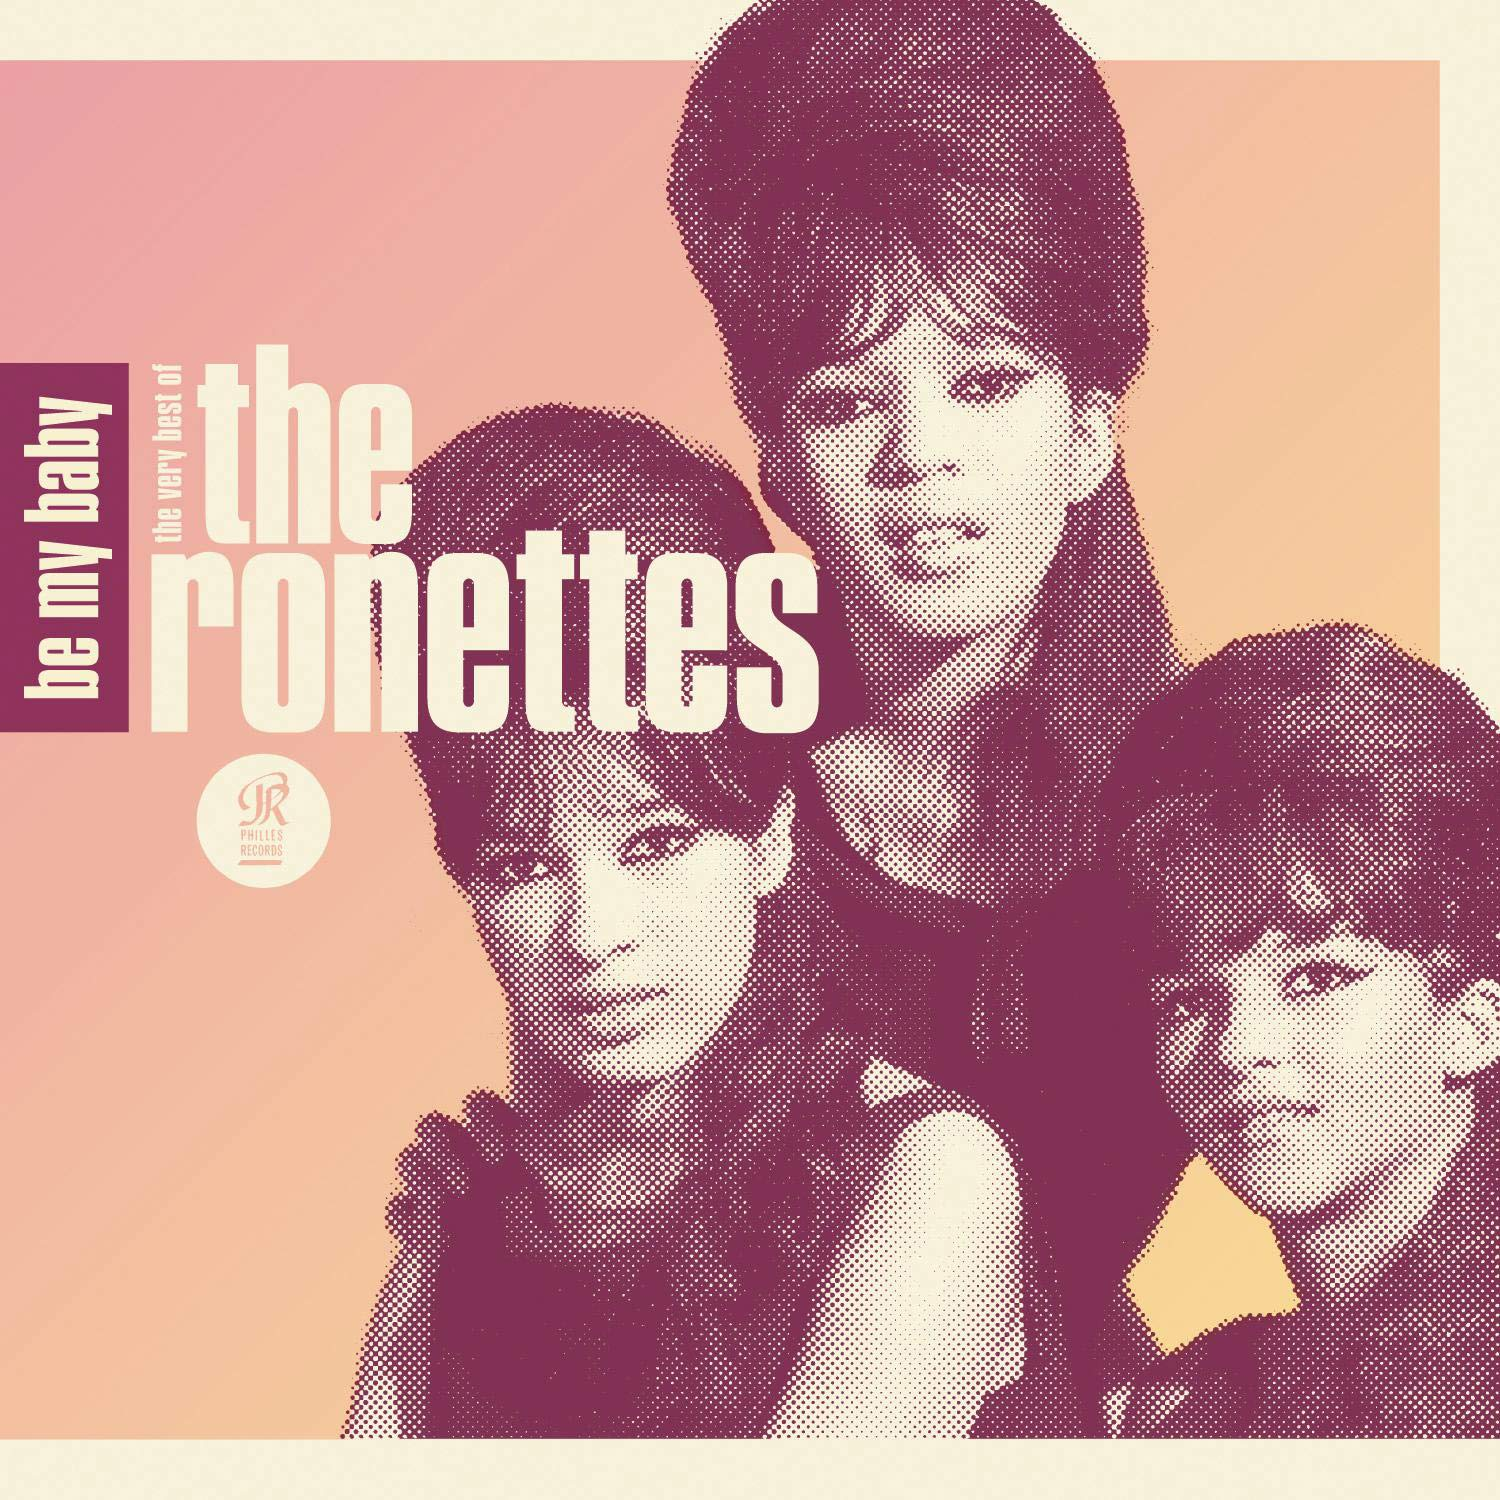 MP3: The Ronettes - Be My Baby